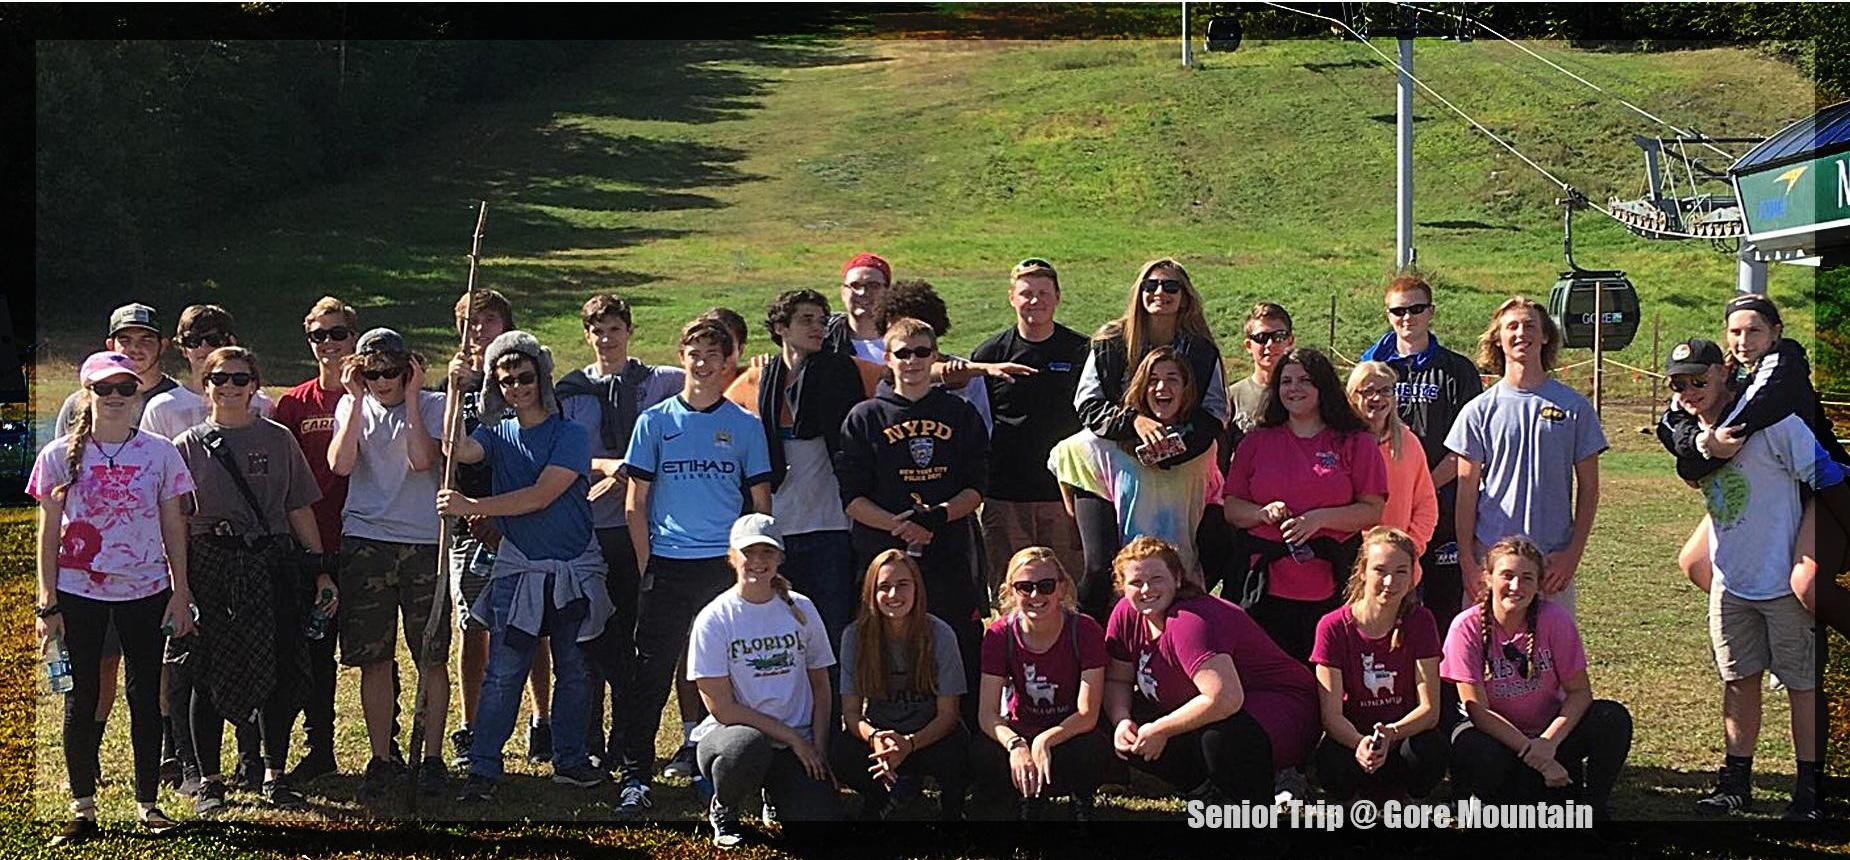 Photograph of the senior class on their class trip on the hill of Gore Mountain